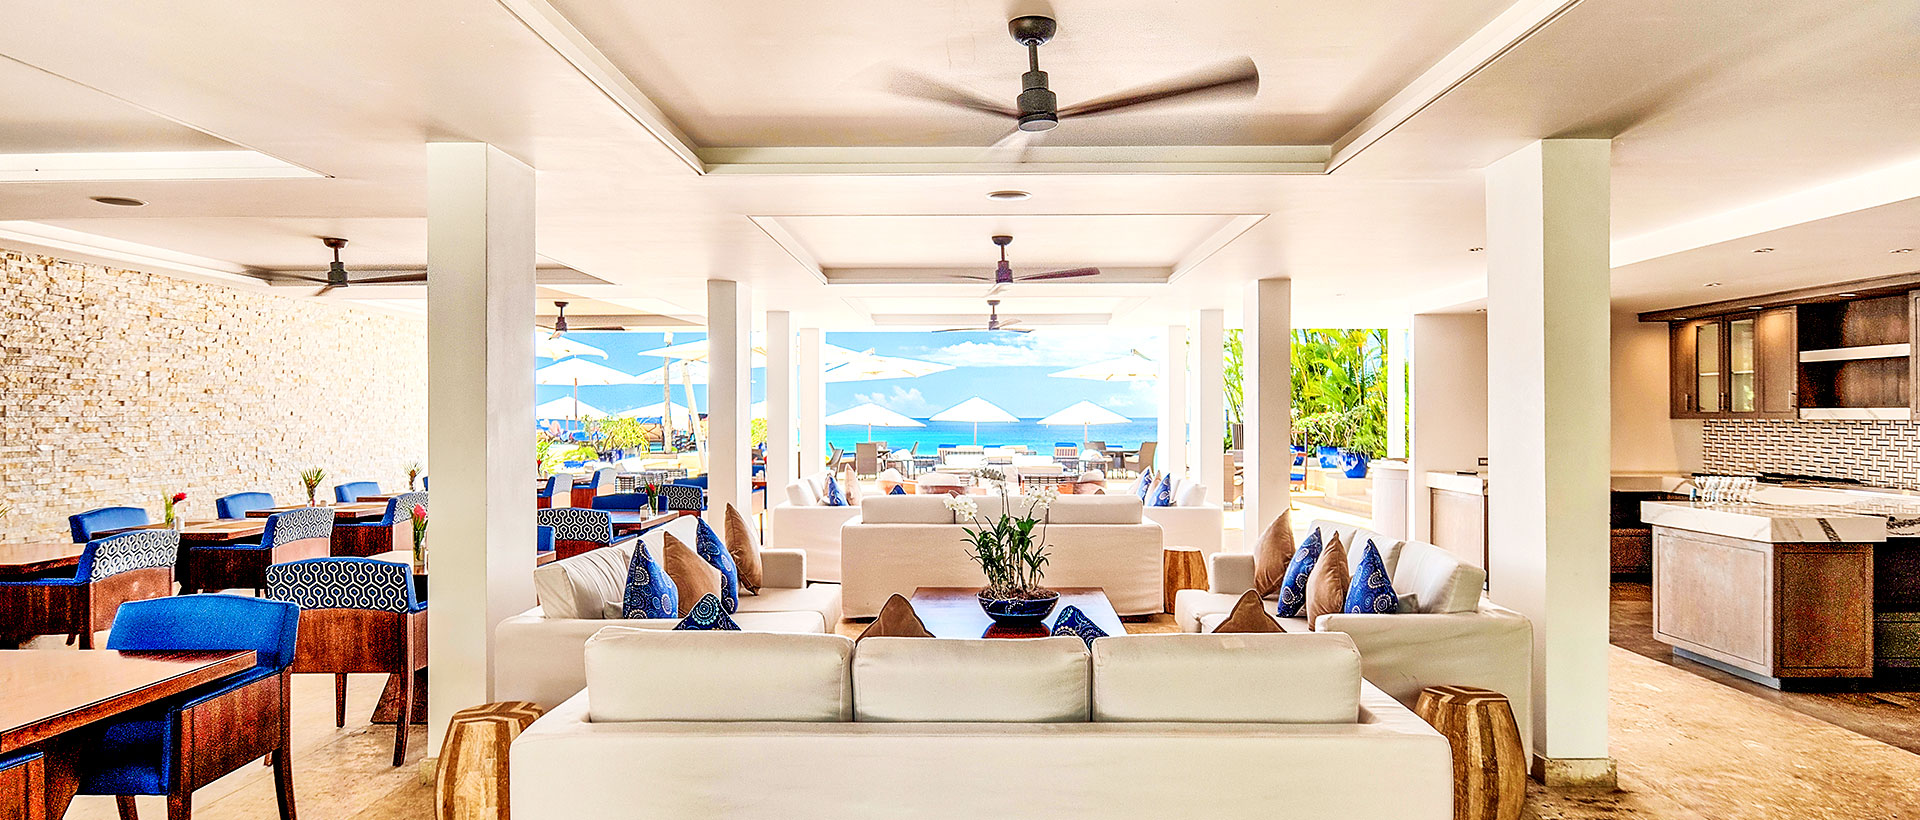 Adults Only The House by Elegant Hotels - All-Inclusive